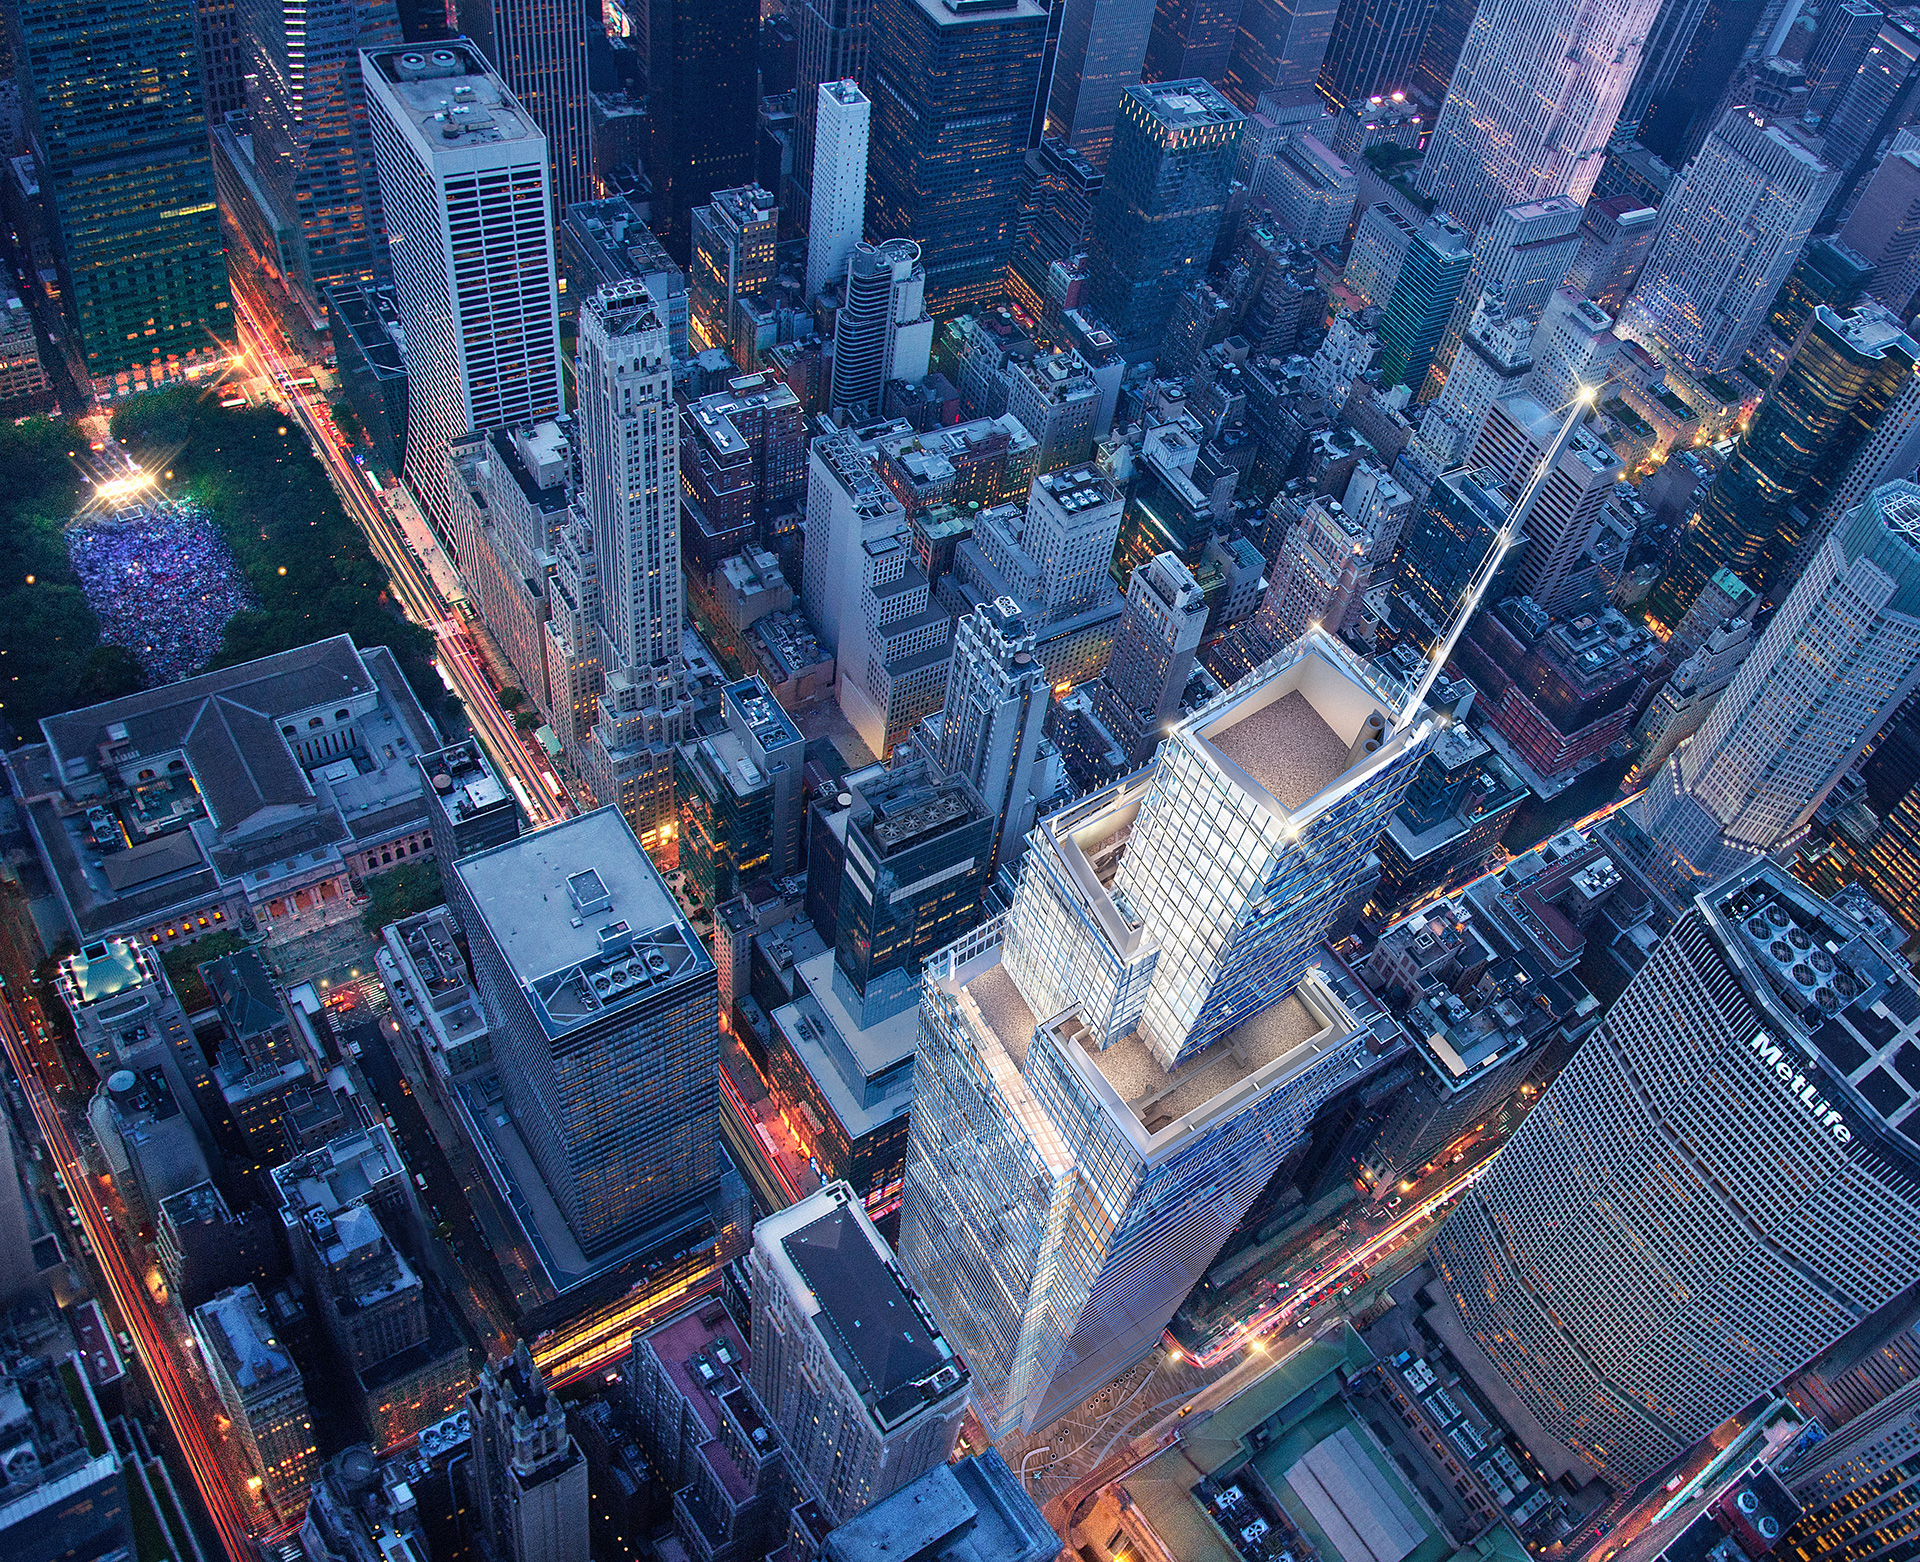 One Vanderbilt | New York | Vladimir Belogolovsky | STIRworld